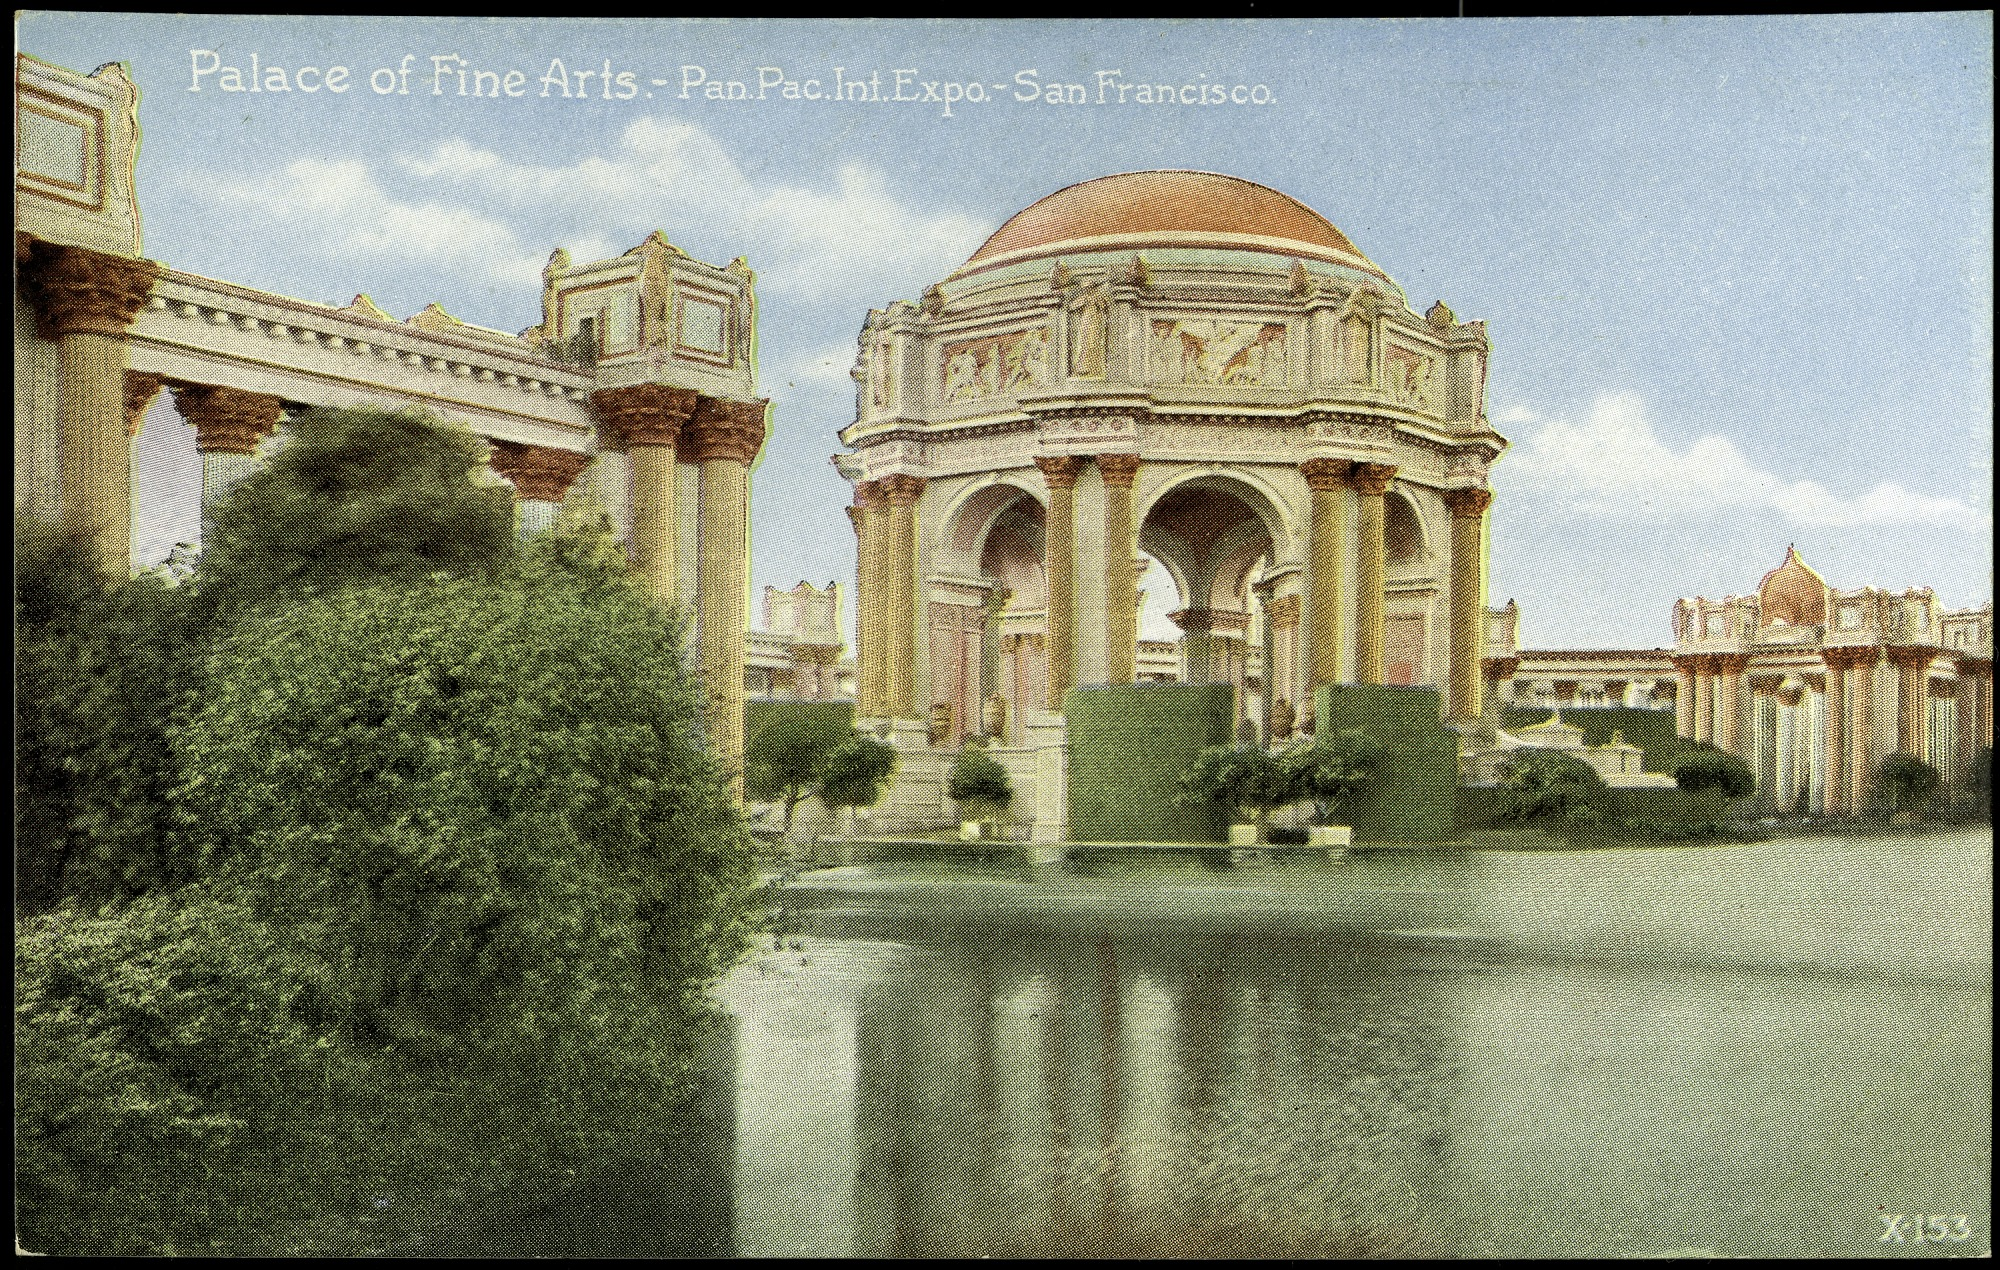 Palace of Fine Arts Postcard from the Panama-Pacific Exposition, by Unknown, Smithsonian Archives - History Div, SIA2012-7597 (front) and SIA2012-7598 (back).